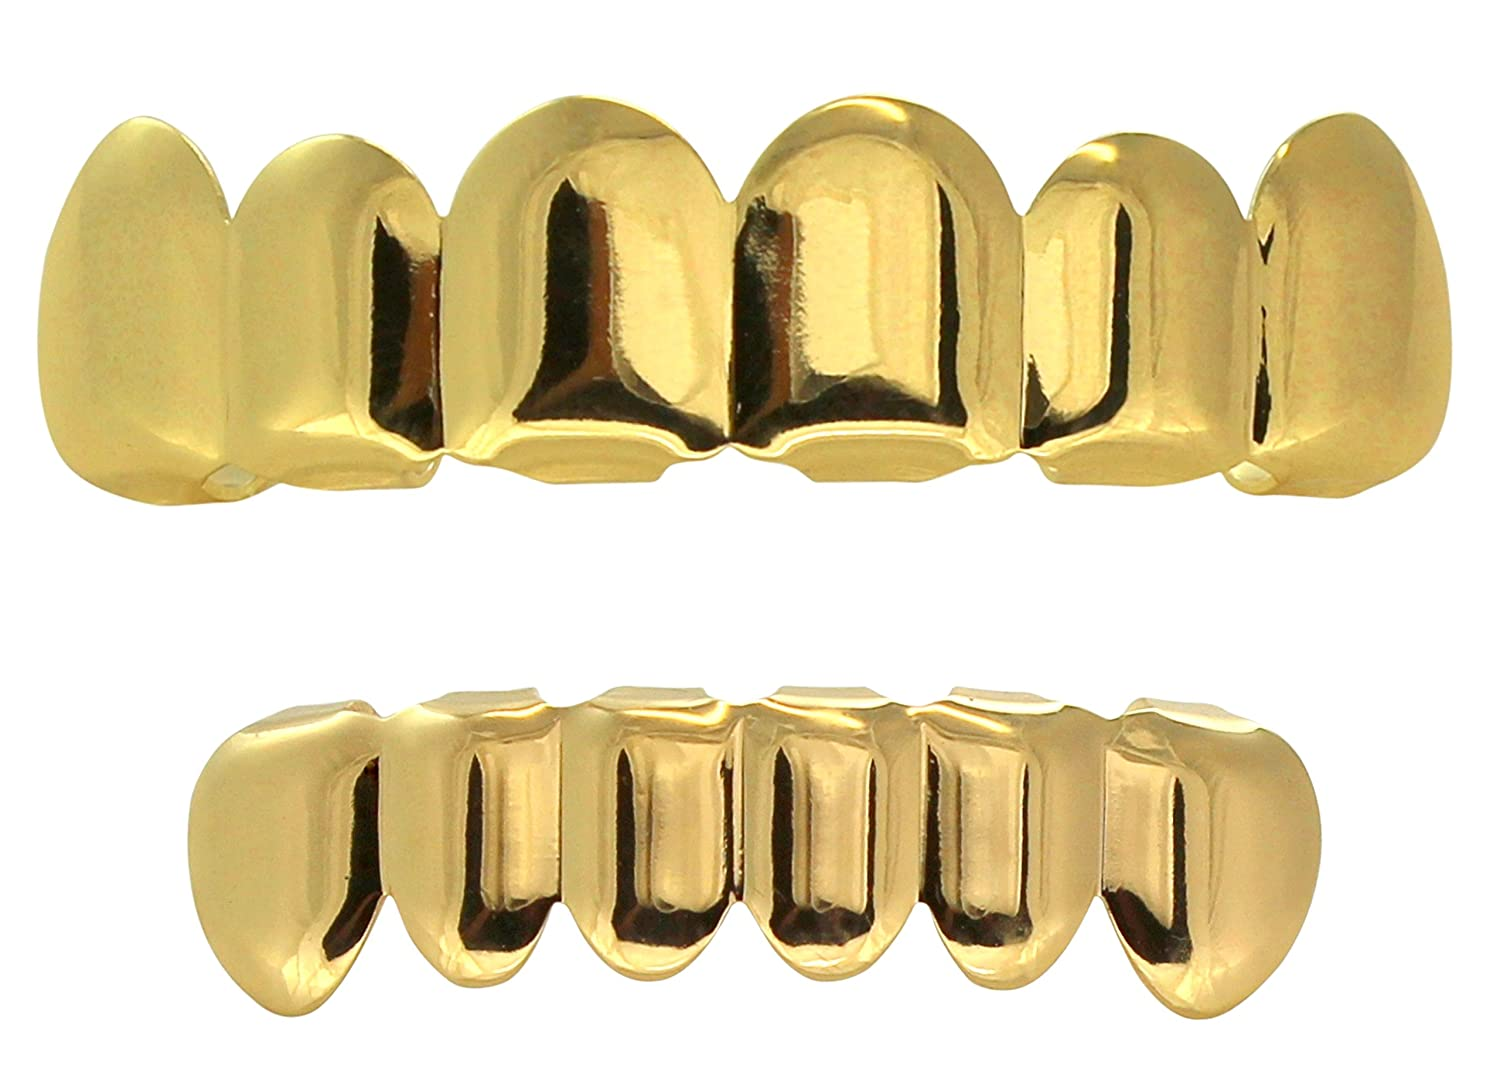 New Custom Fit 14k Gold Plated Hip Hop Teeth Grillz Caps Top & Bottom Grill Set Best Grillz bx324